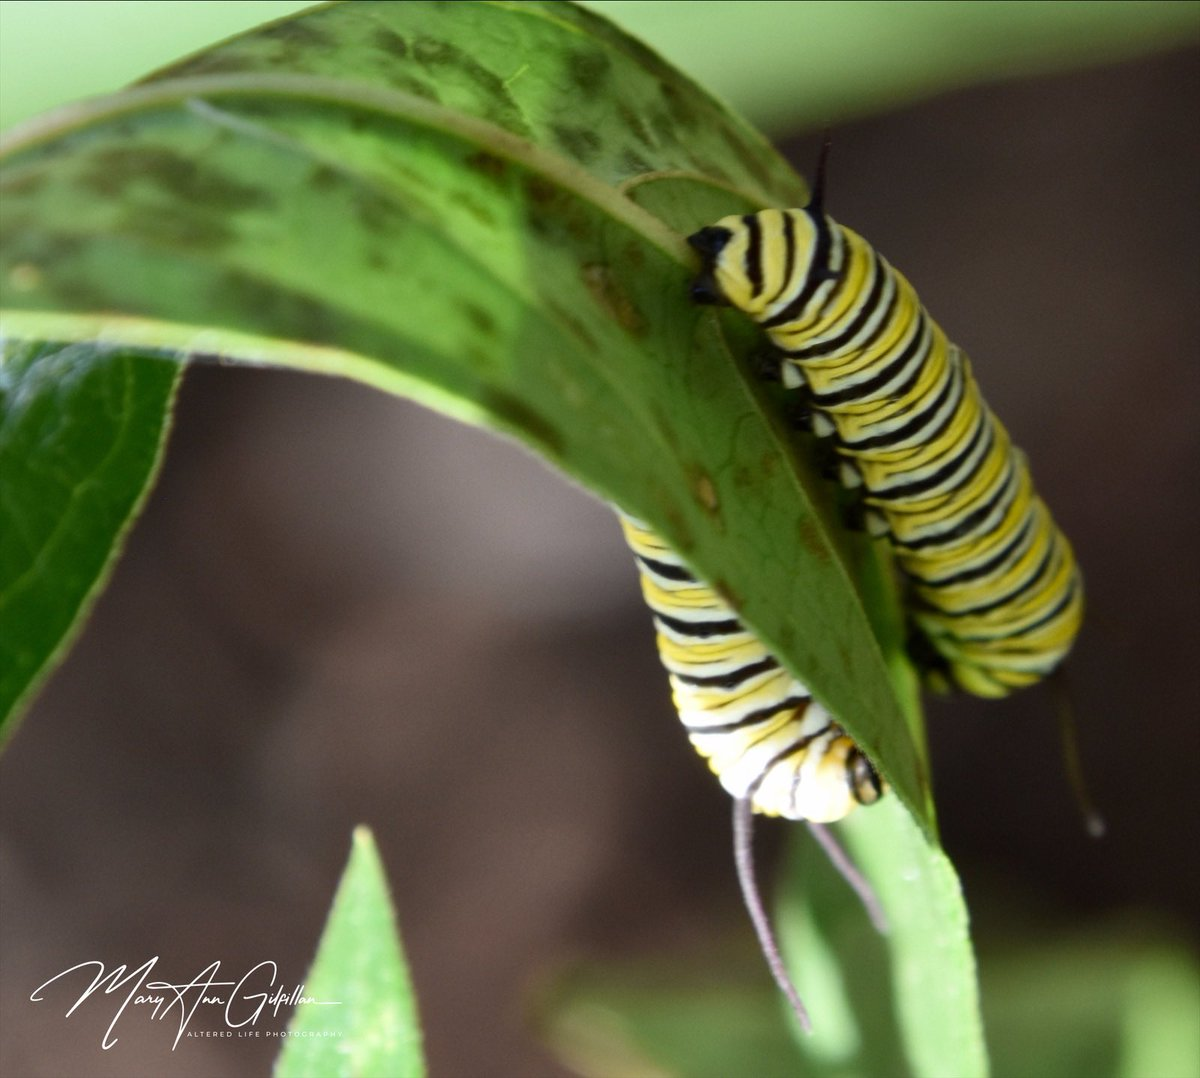 From caterpillar to chrysalis to butterfly!  I started raising butterflies this year! #Butterflies #Monarchs #photooftheday https://t.co/7fKvnkAukB